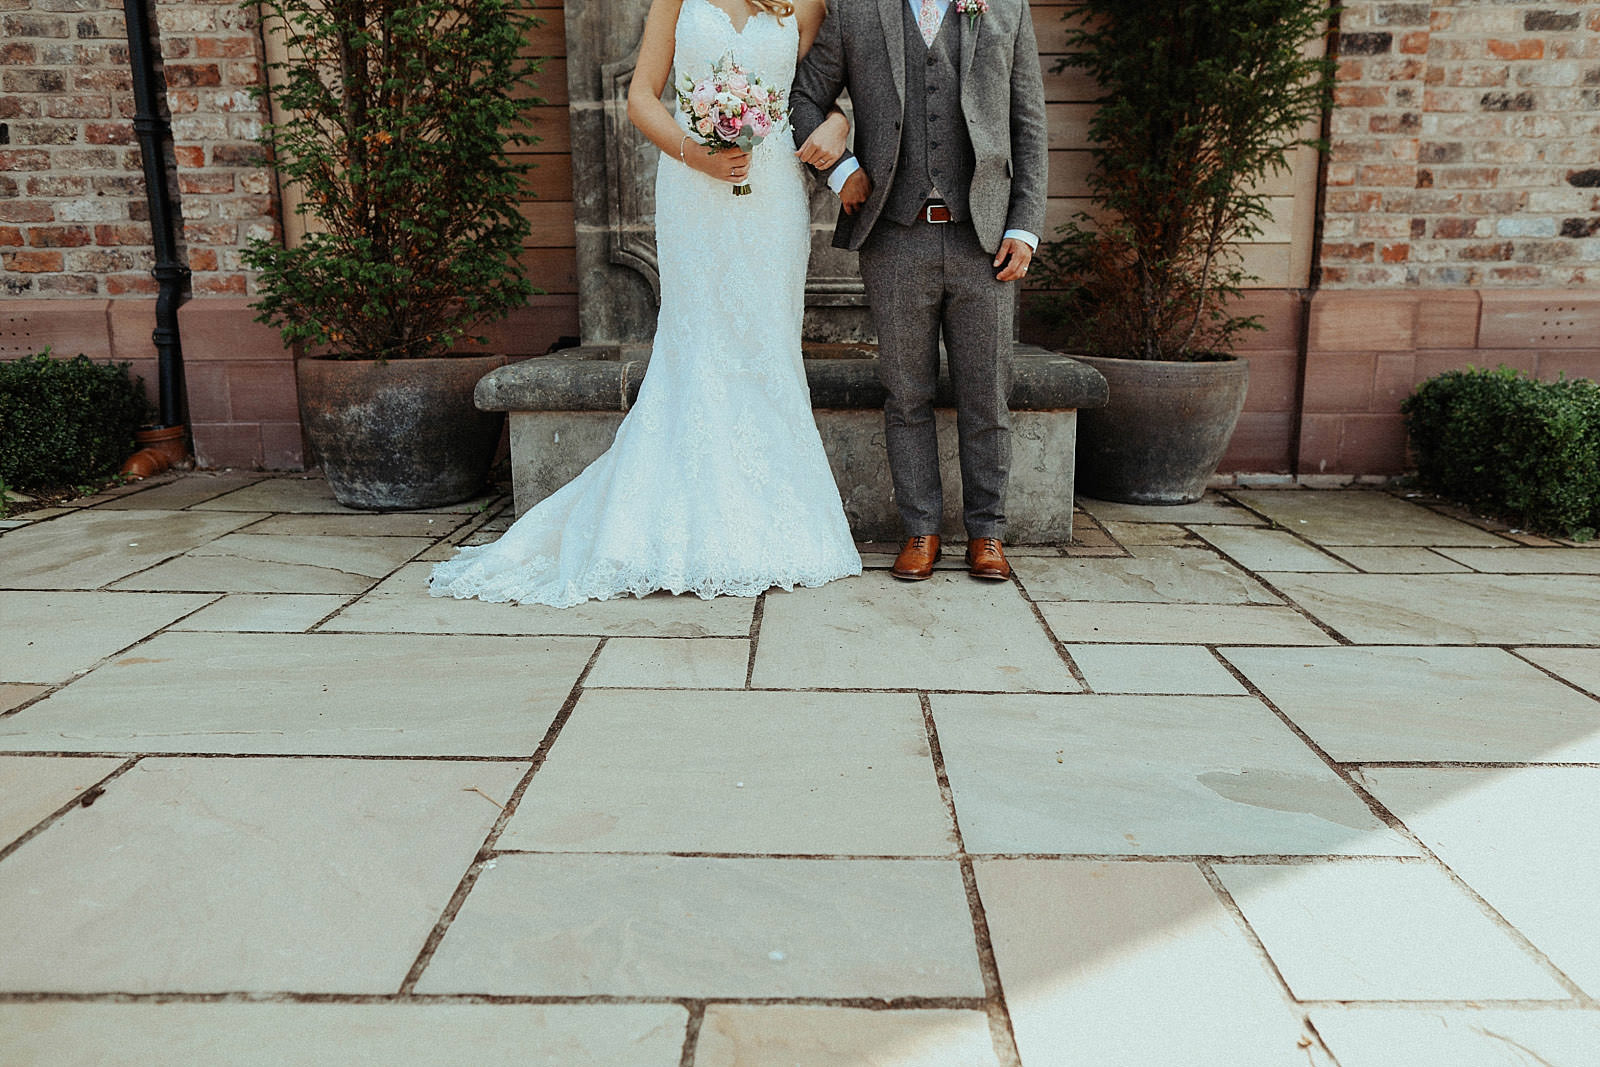 bottom half of brides dress and grooms suit and shoes